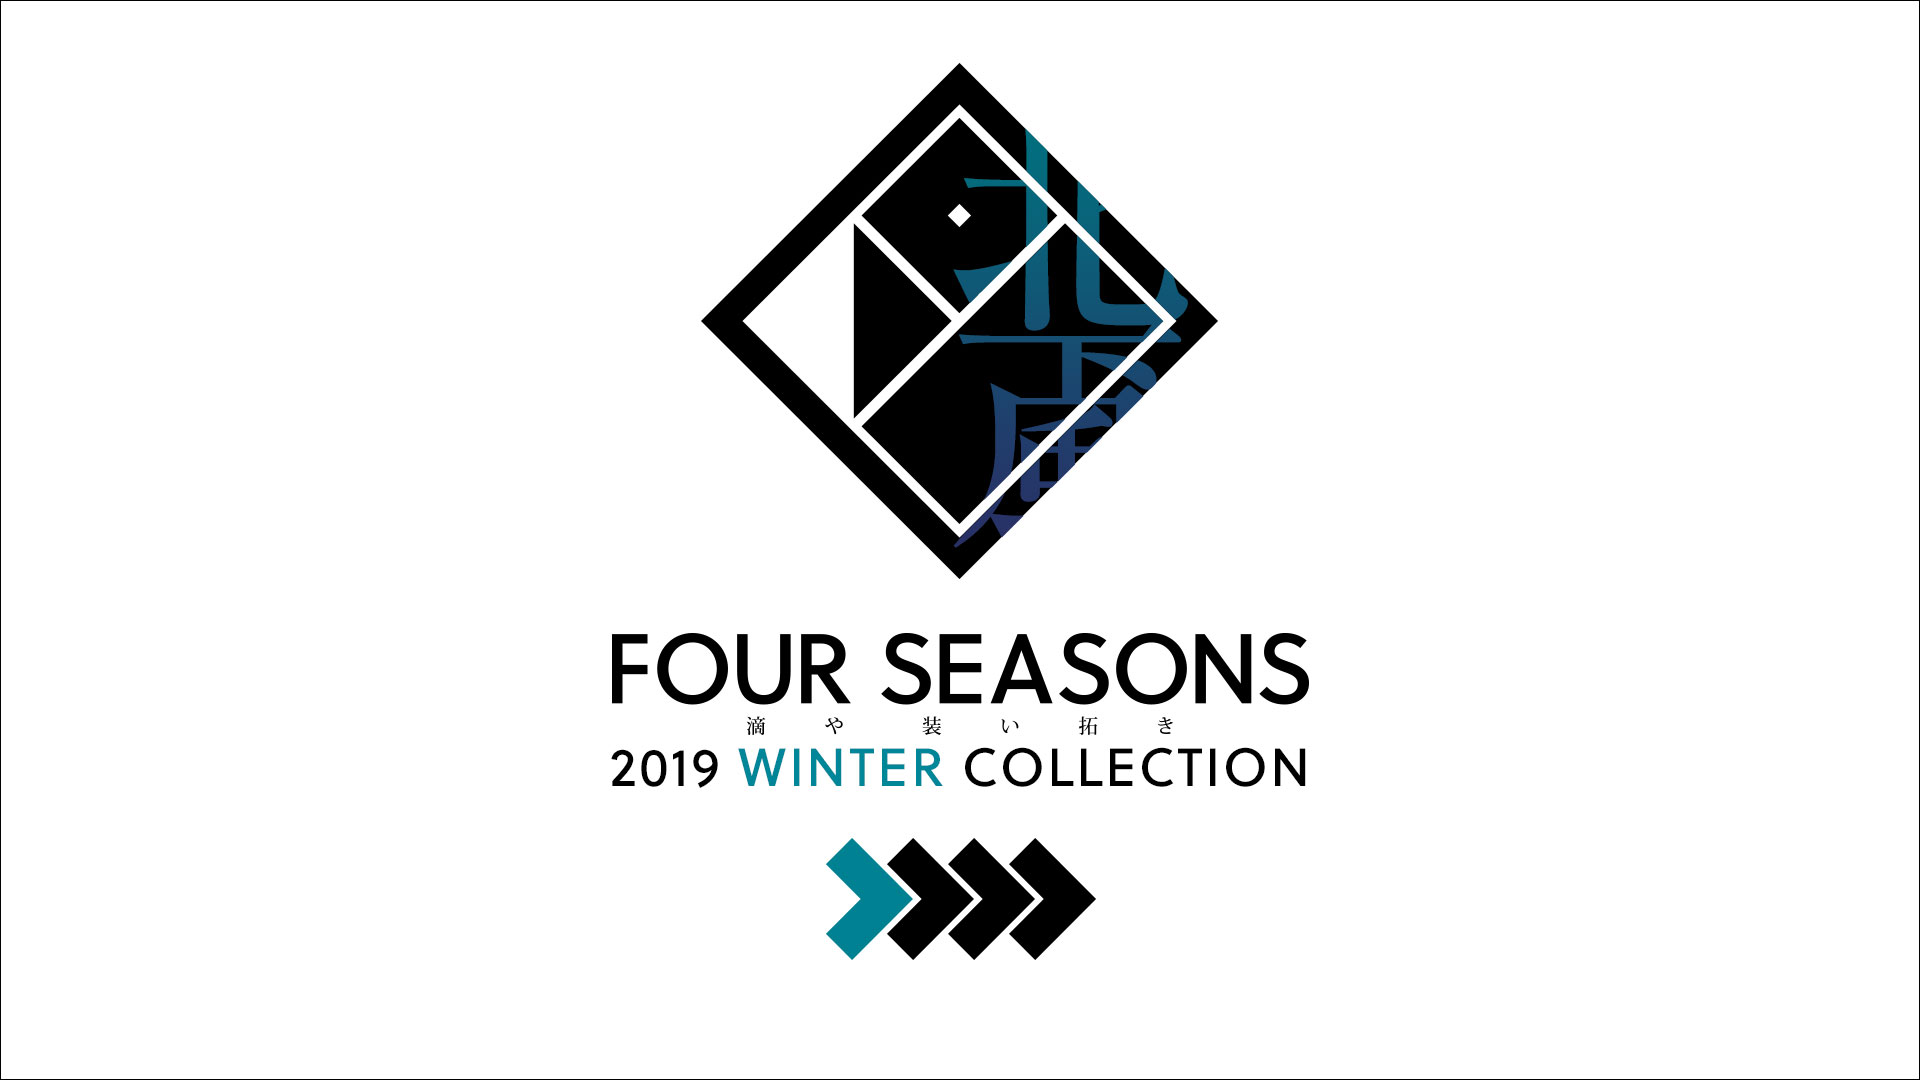 [PHOTO:FOUR SEASONS 2019 WINTER COLLECTION]